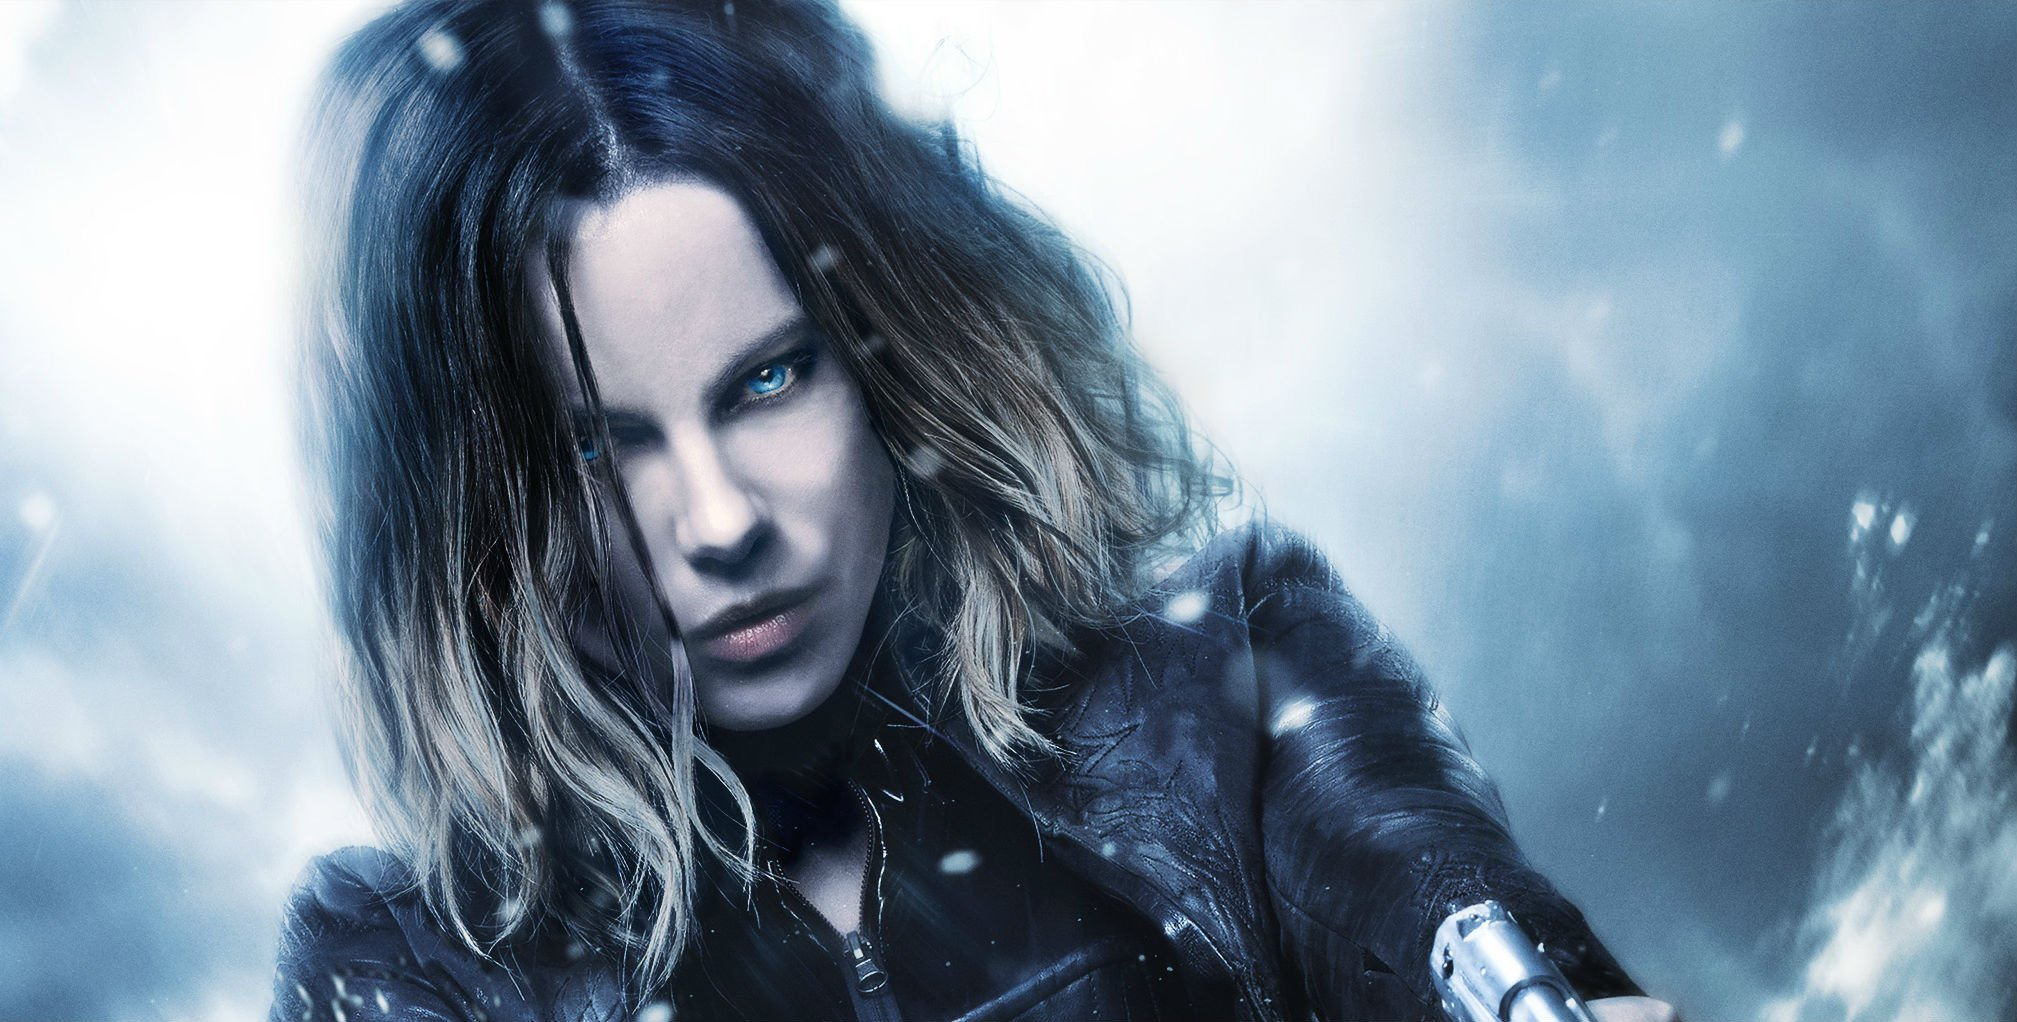 Kate Beckinsale Fires At Will In Dynamic New Underworld Blood Wars